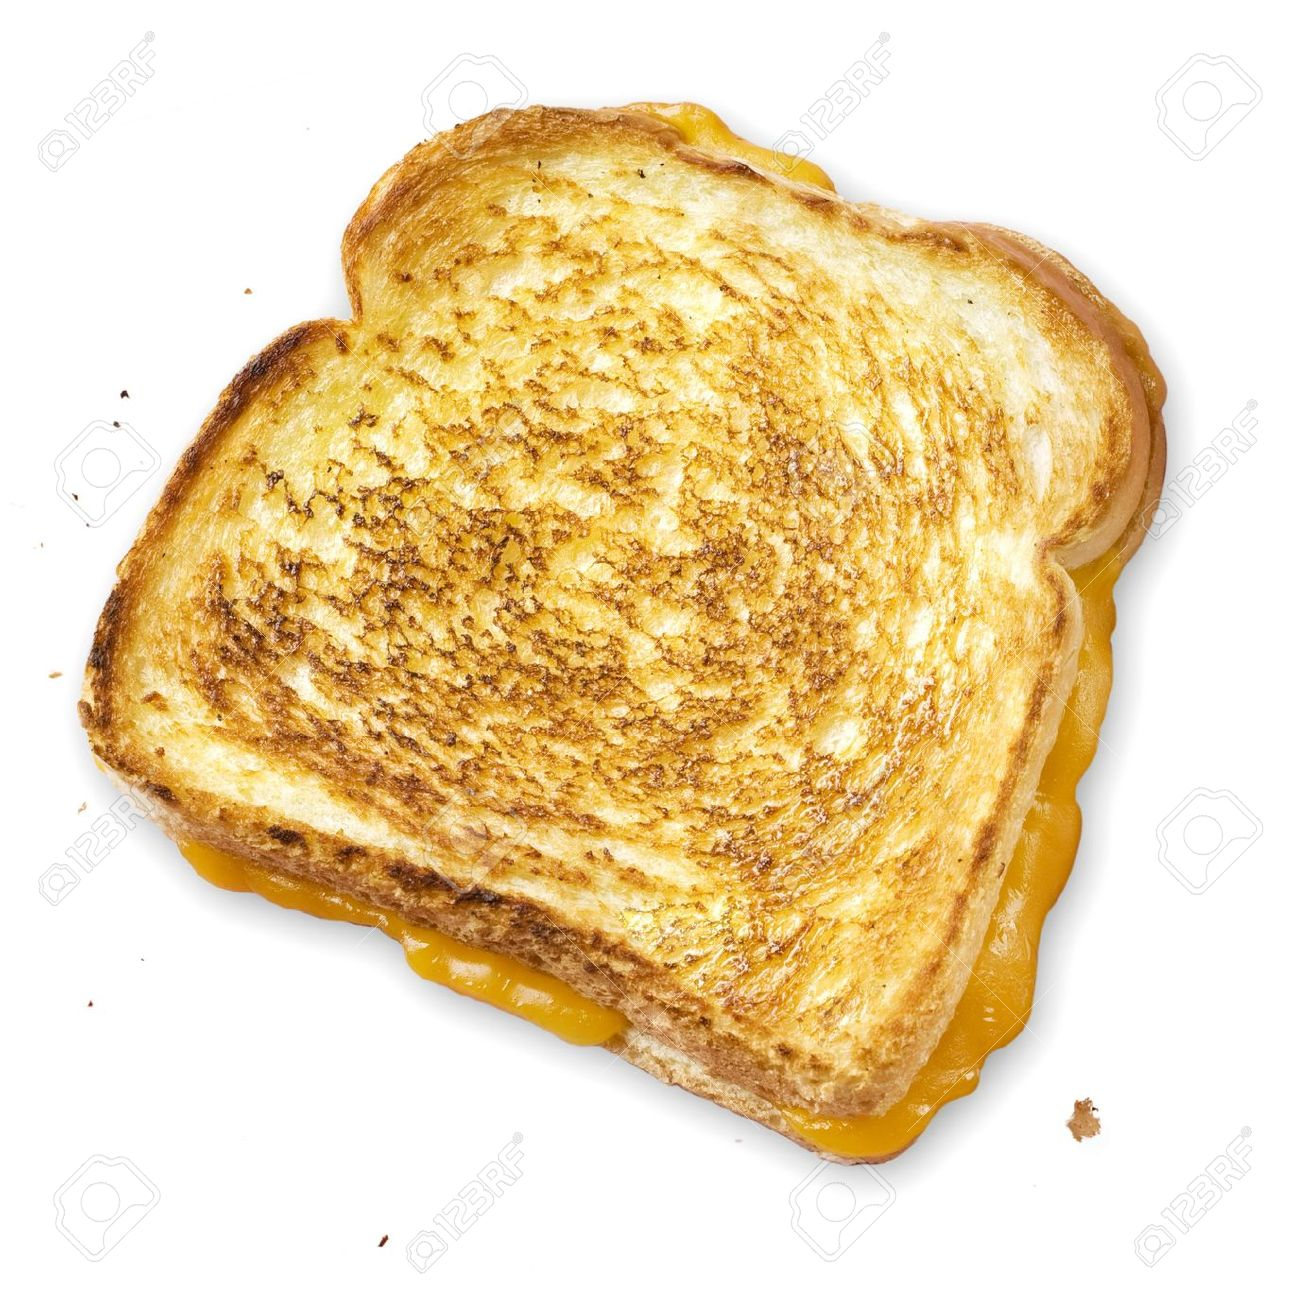 pin Grilled Cheese clipart de - Grilled Cheese Clipart